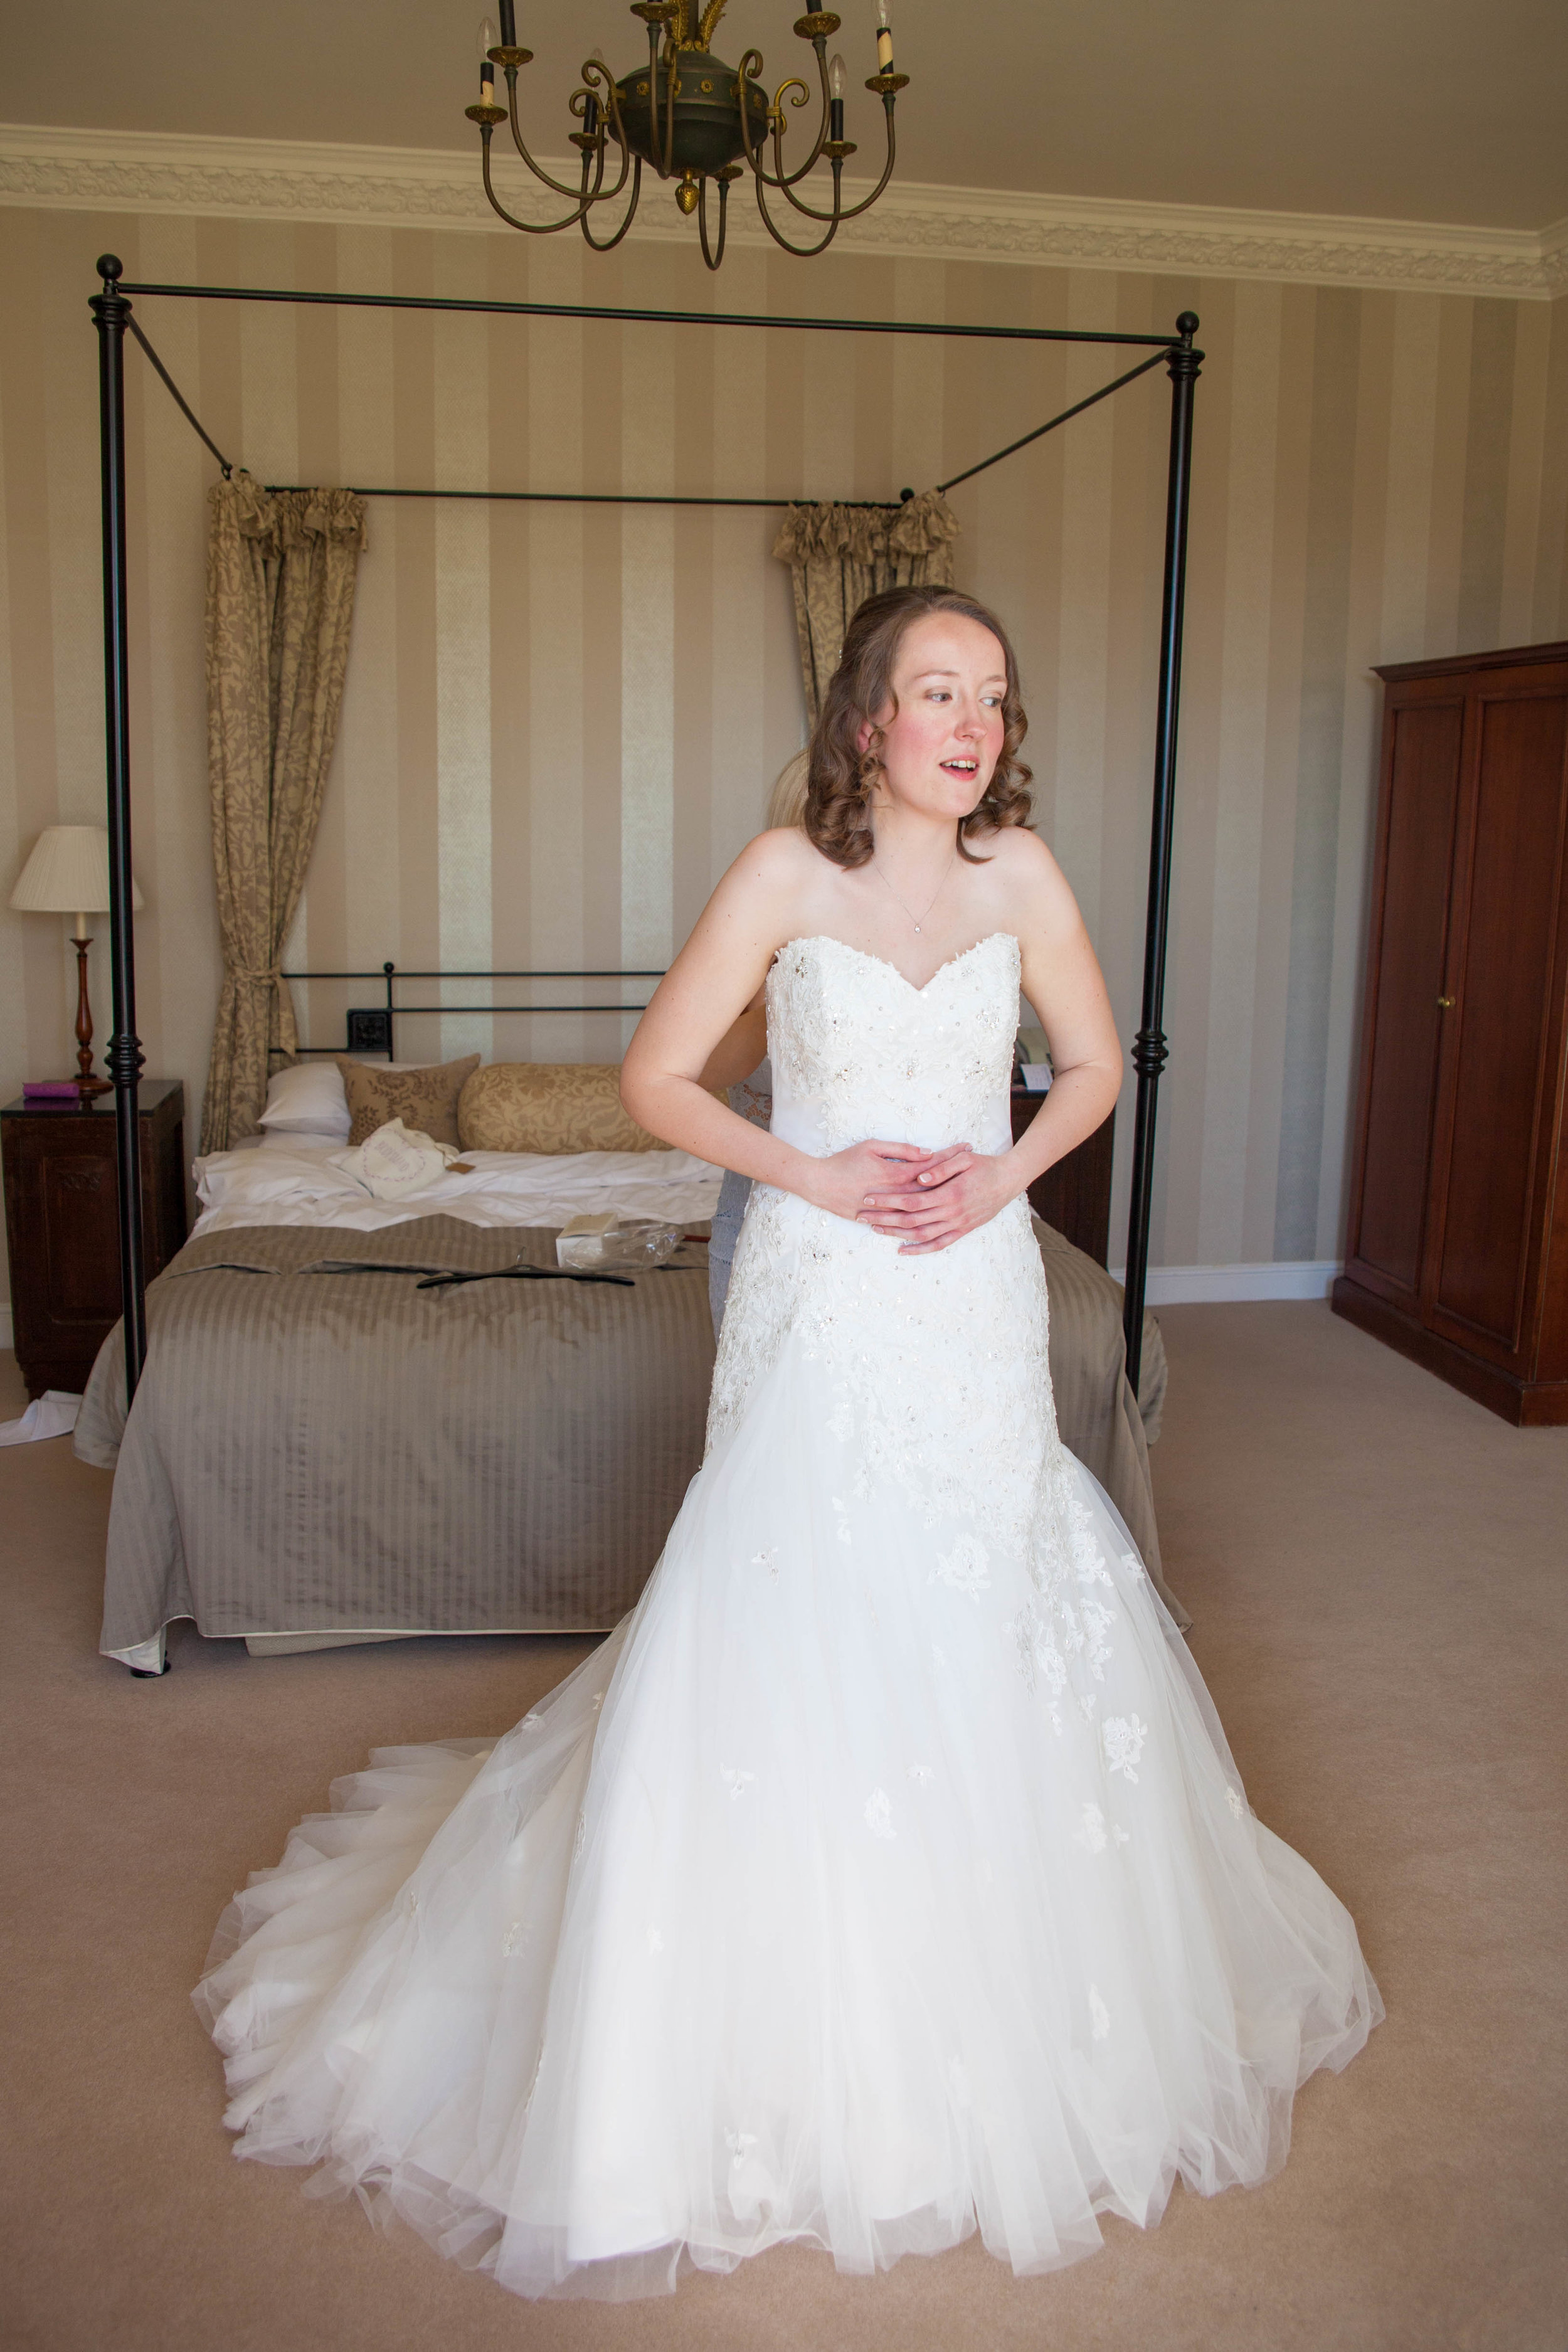 NLPhotography_Taplow_House-Wedding_Photographer_Emily&Alan_C-177.jpg